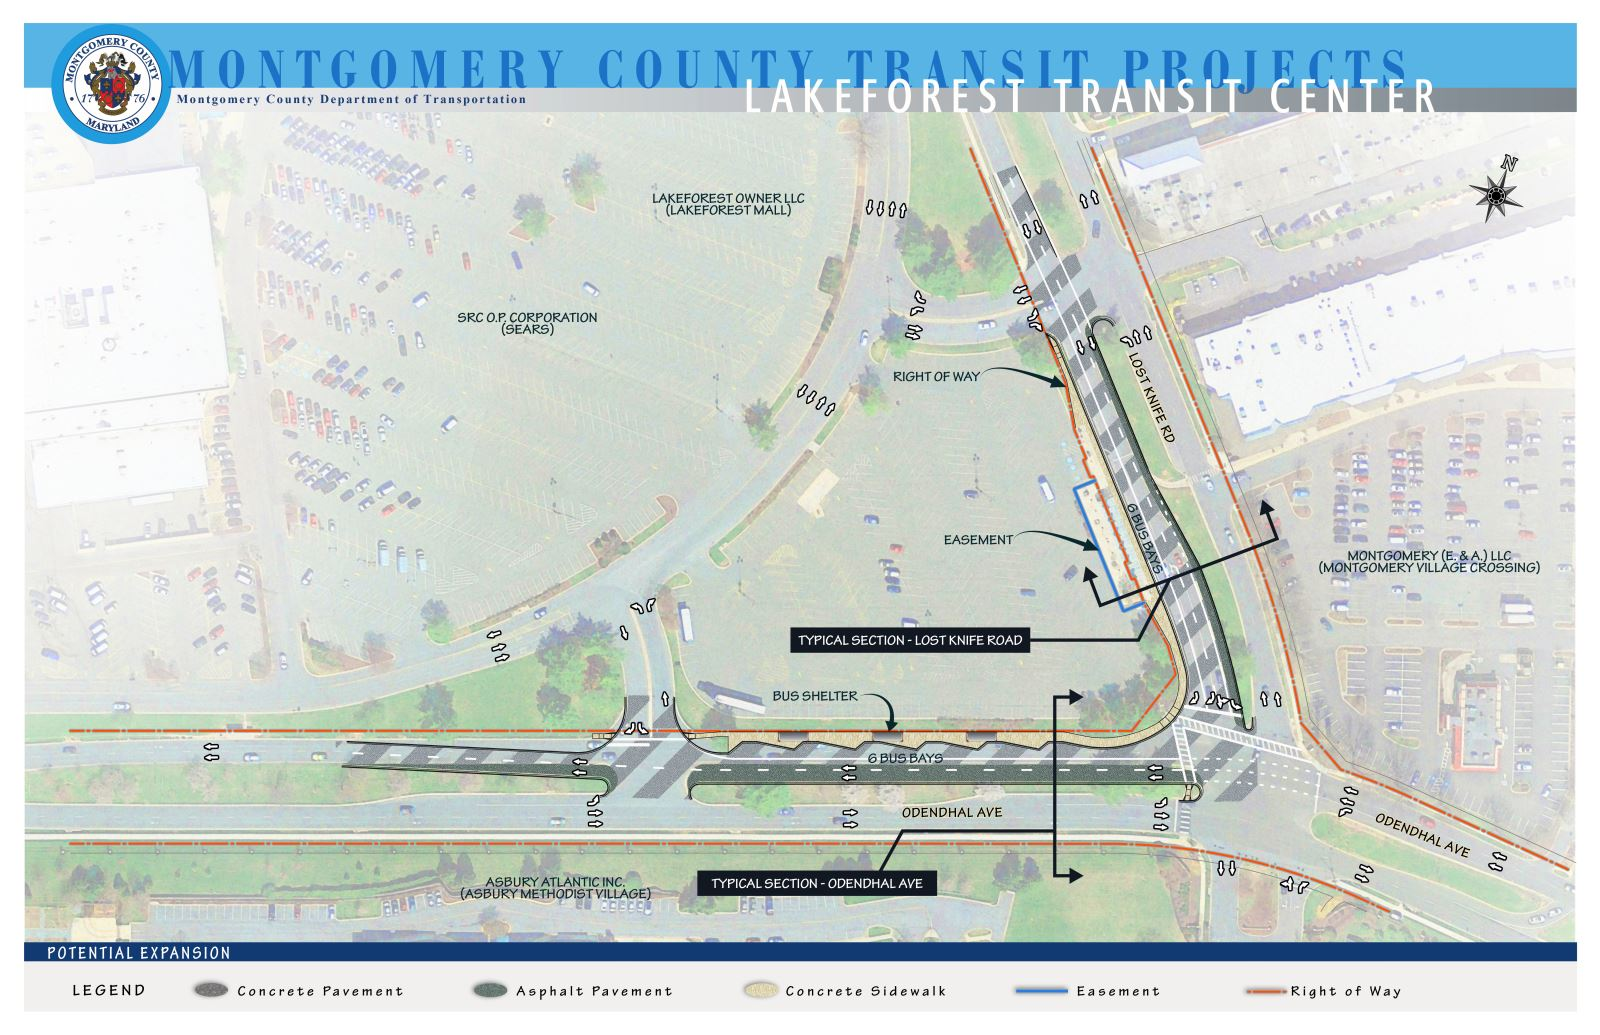 Lakeforest Transit Center Expansion Feasibility Study Report